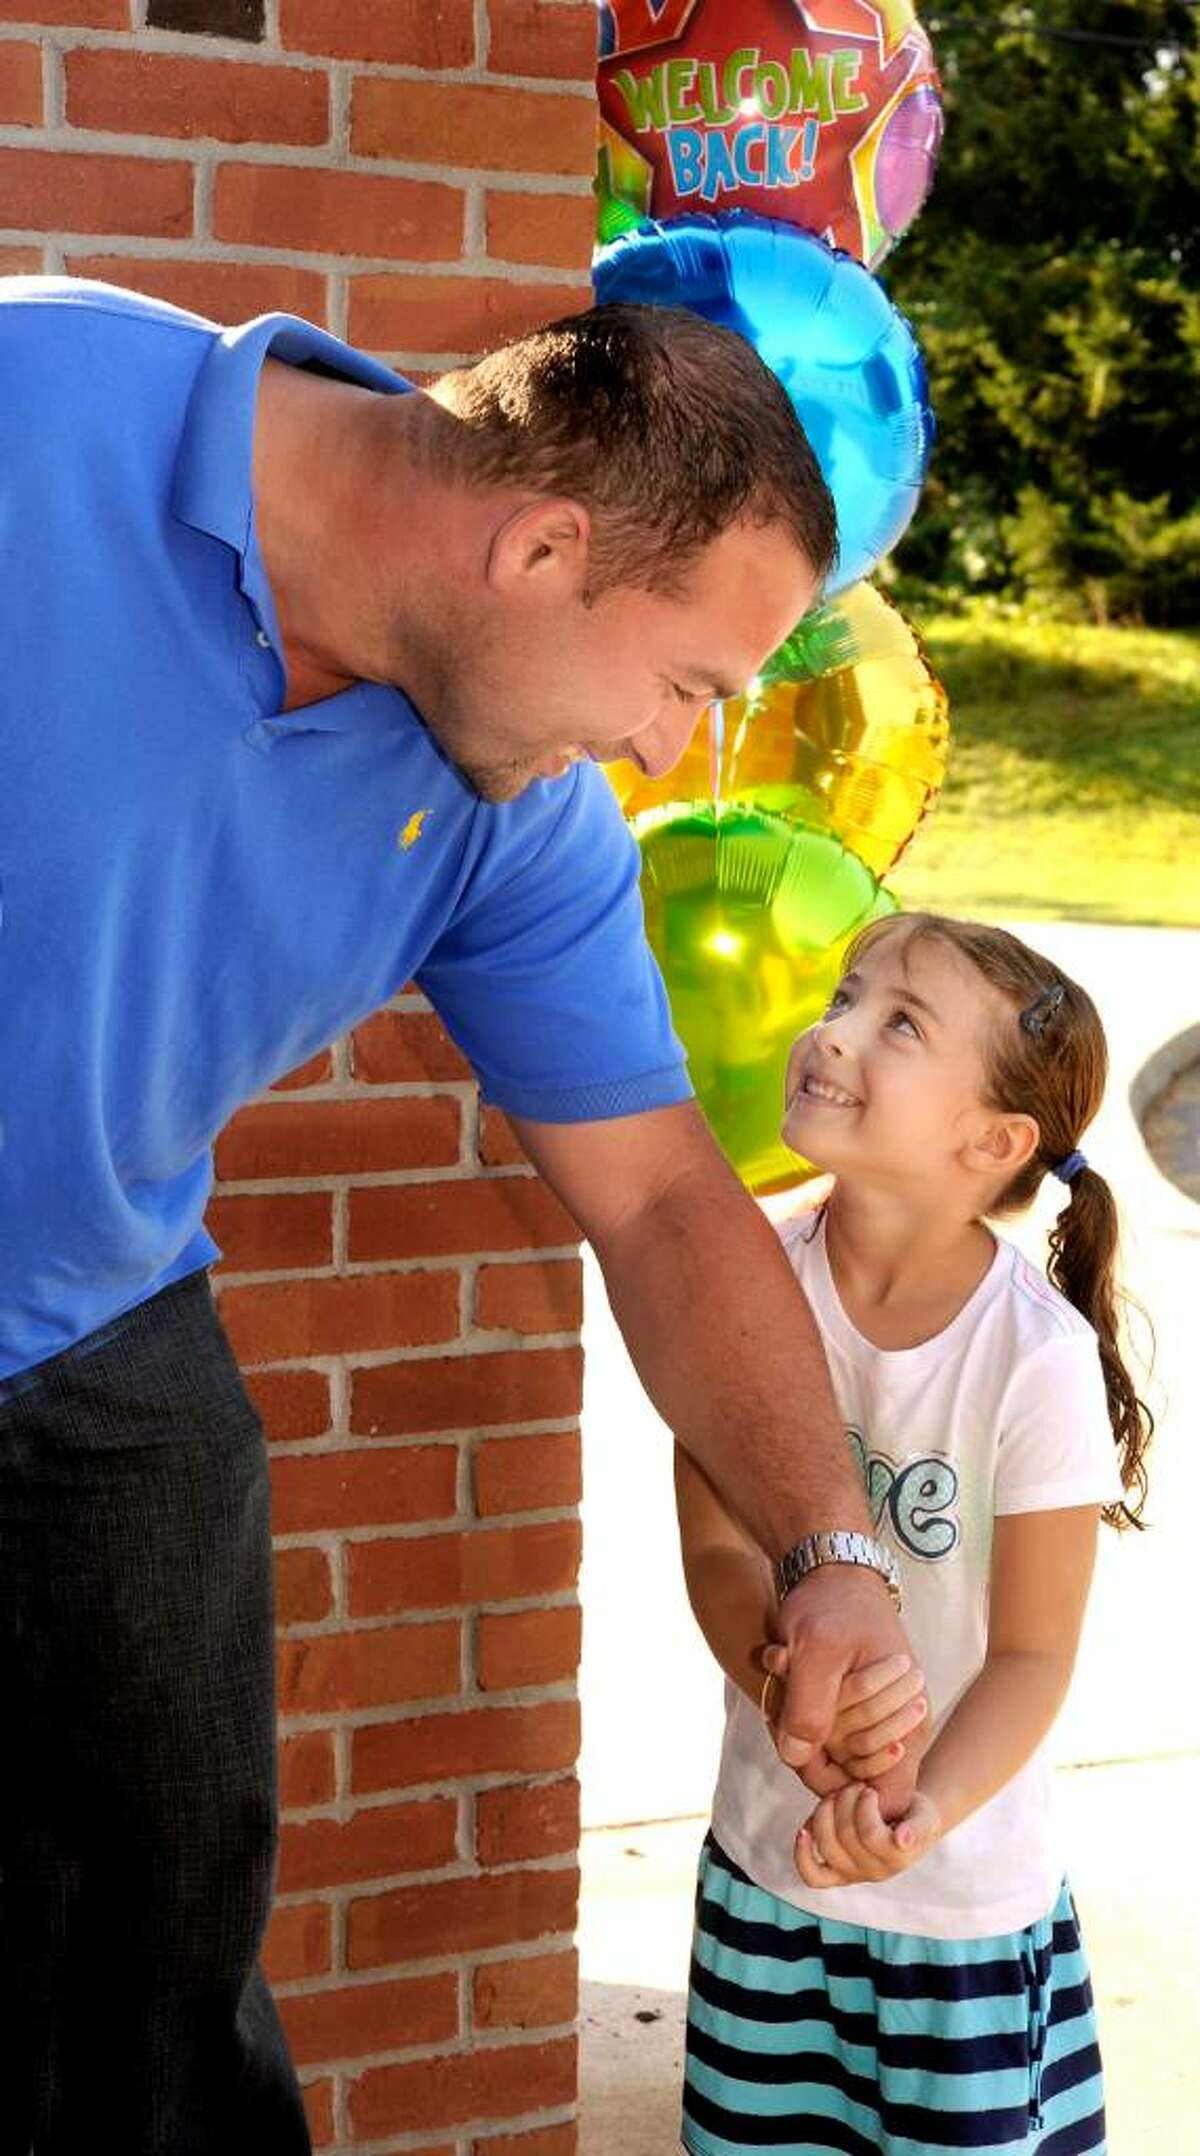 Dan Roe gives a word of encouragement to Emma, his 5 year old daughter at the enterance to the Frank A. Berry school in Bethel on her first day, Aug.25.2009.